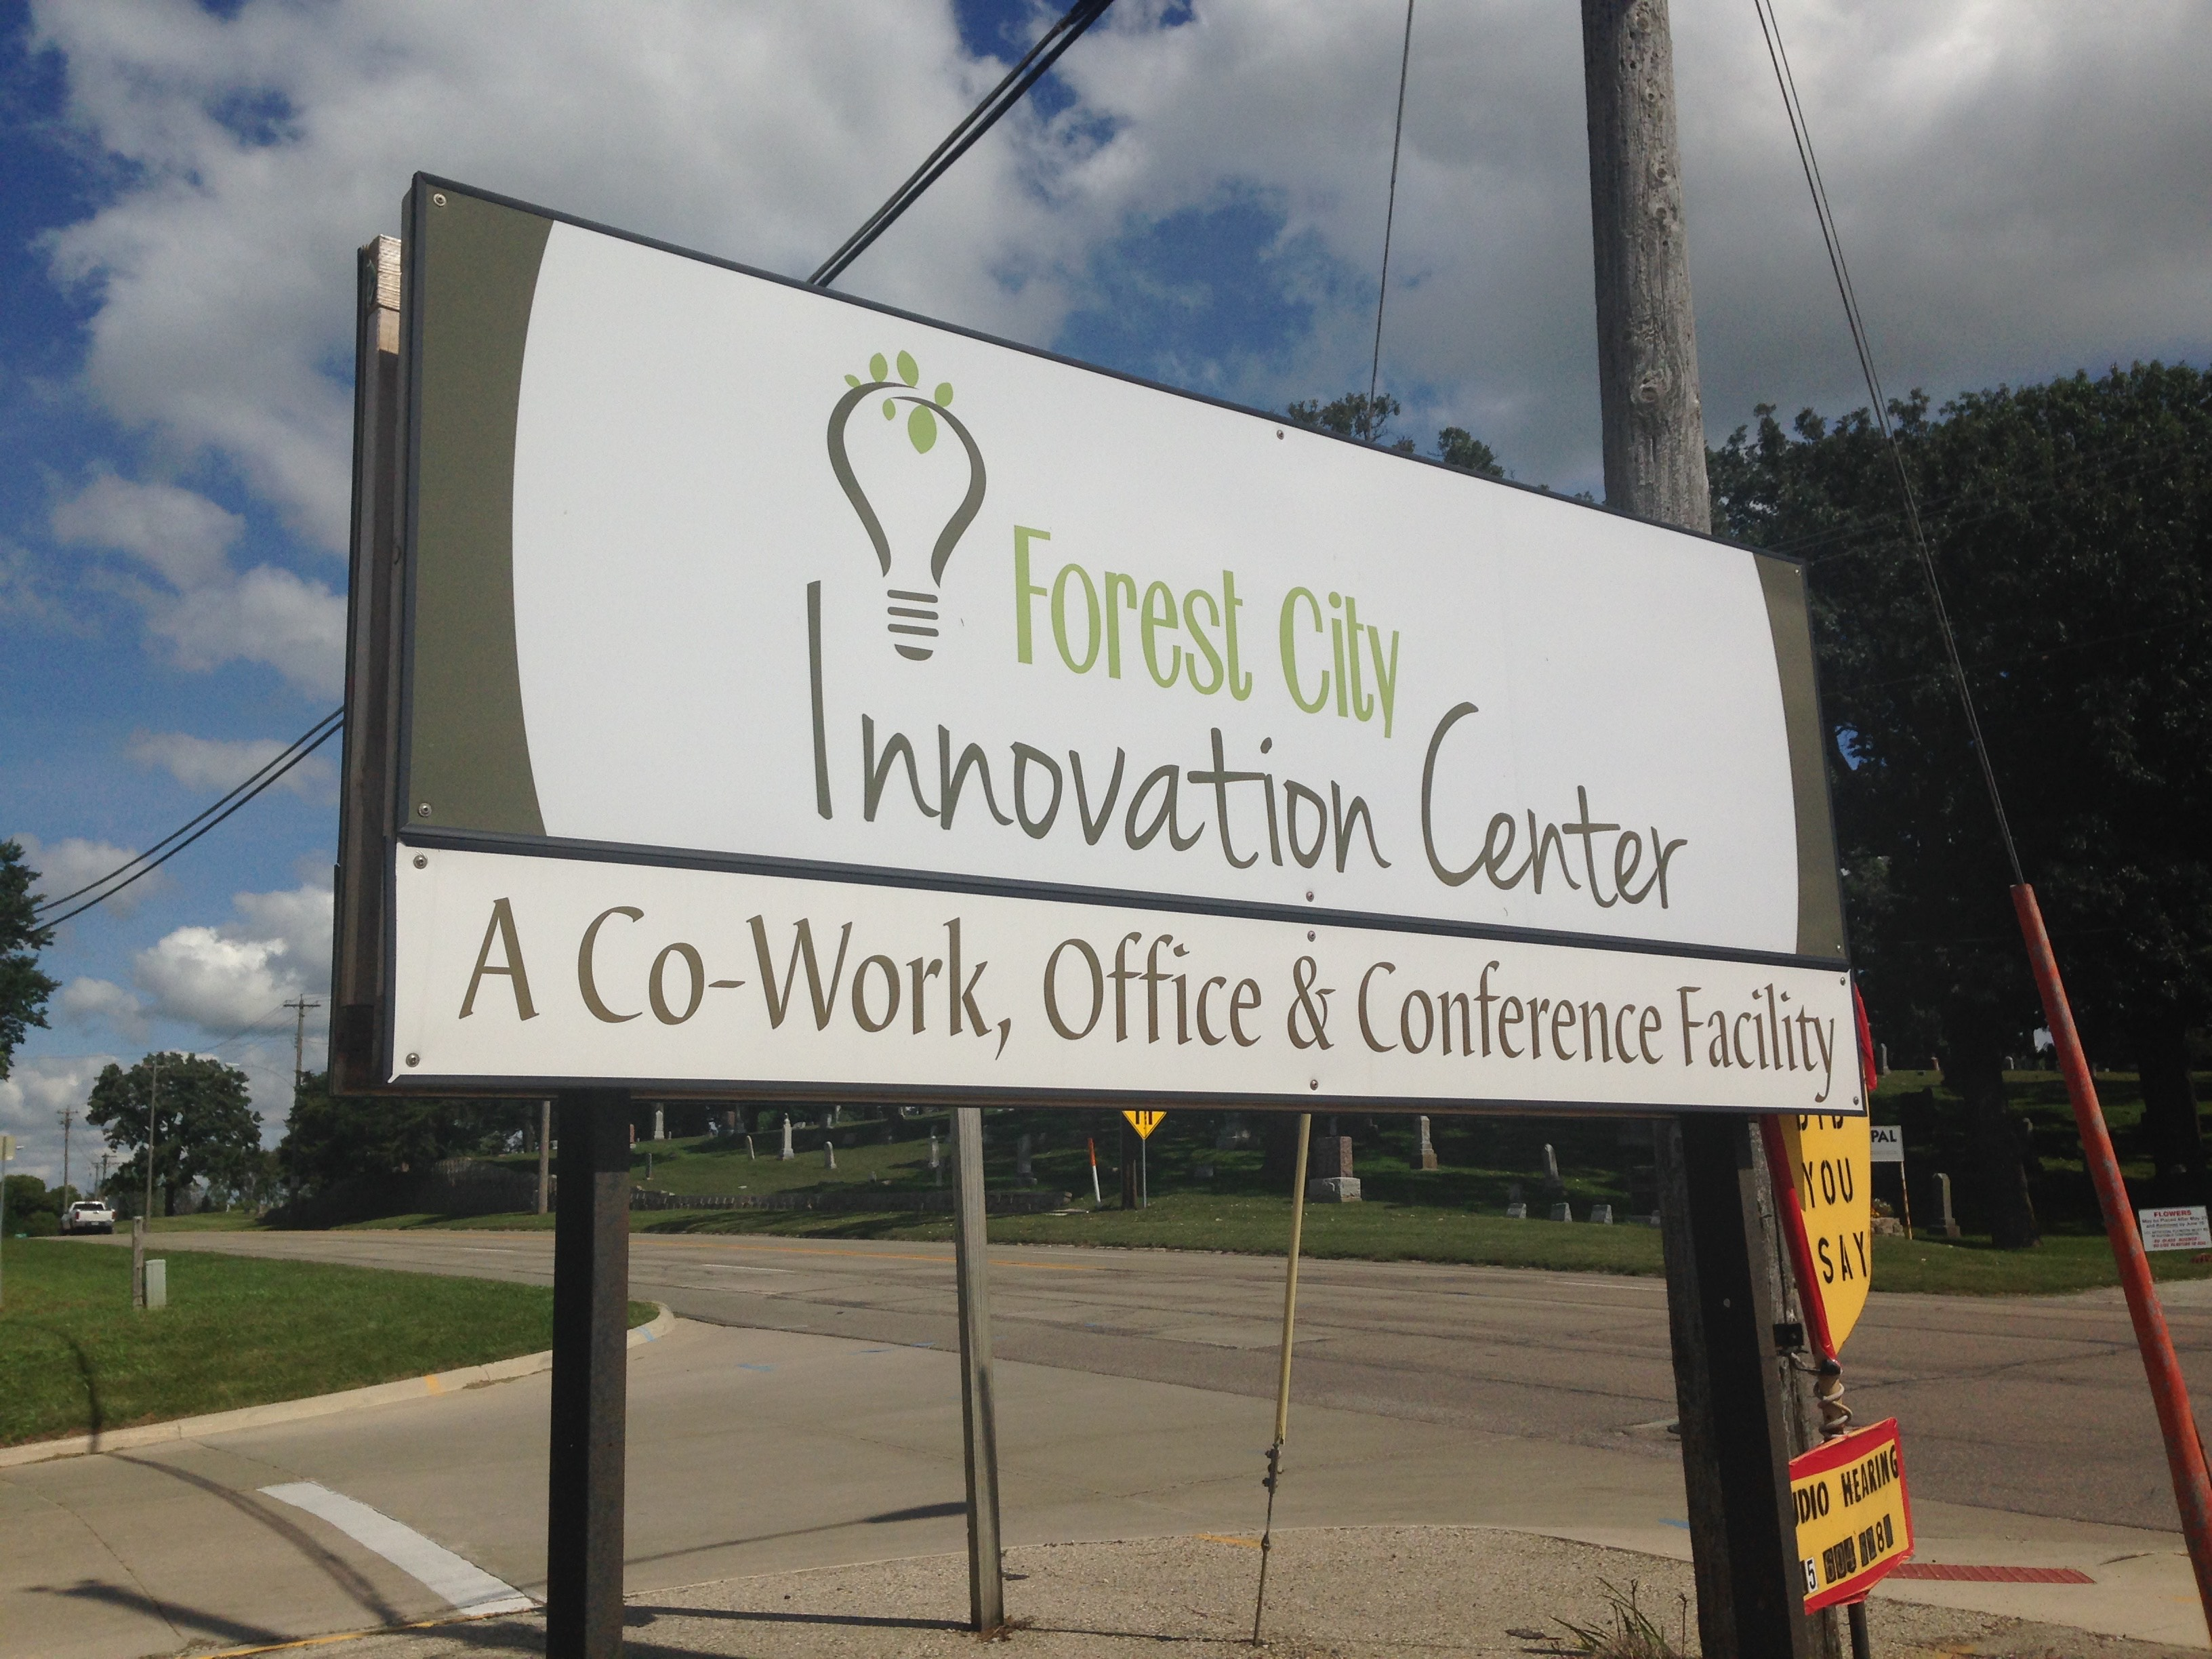 The whole team is so excited to be working inside of the Forest City Innovation Center!